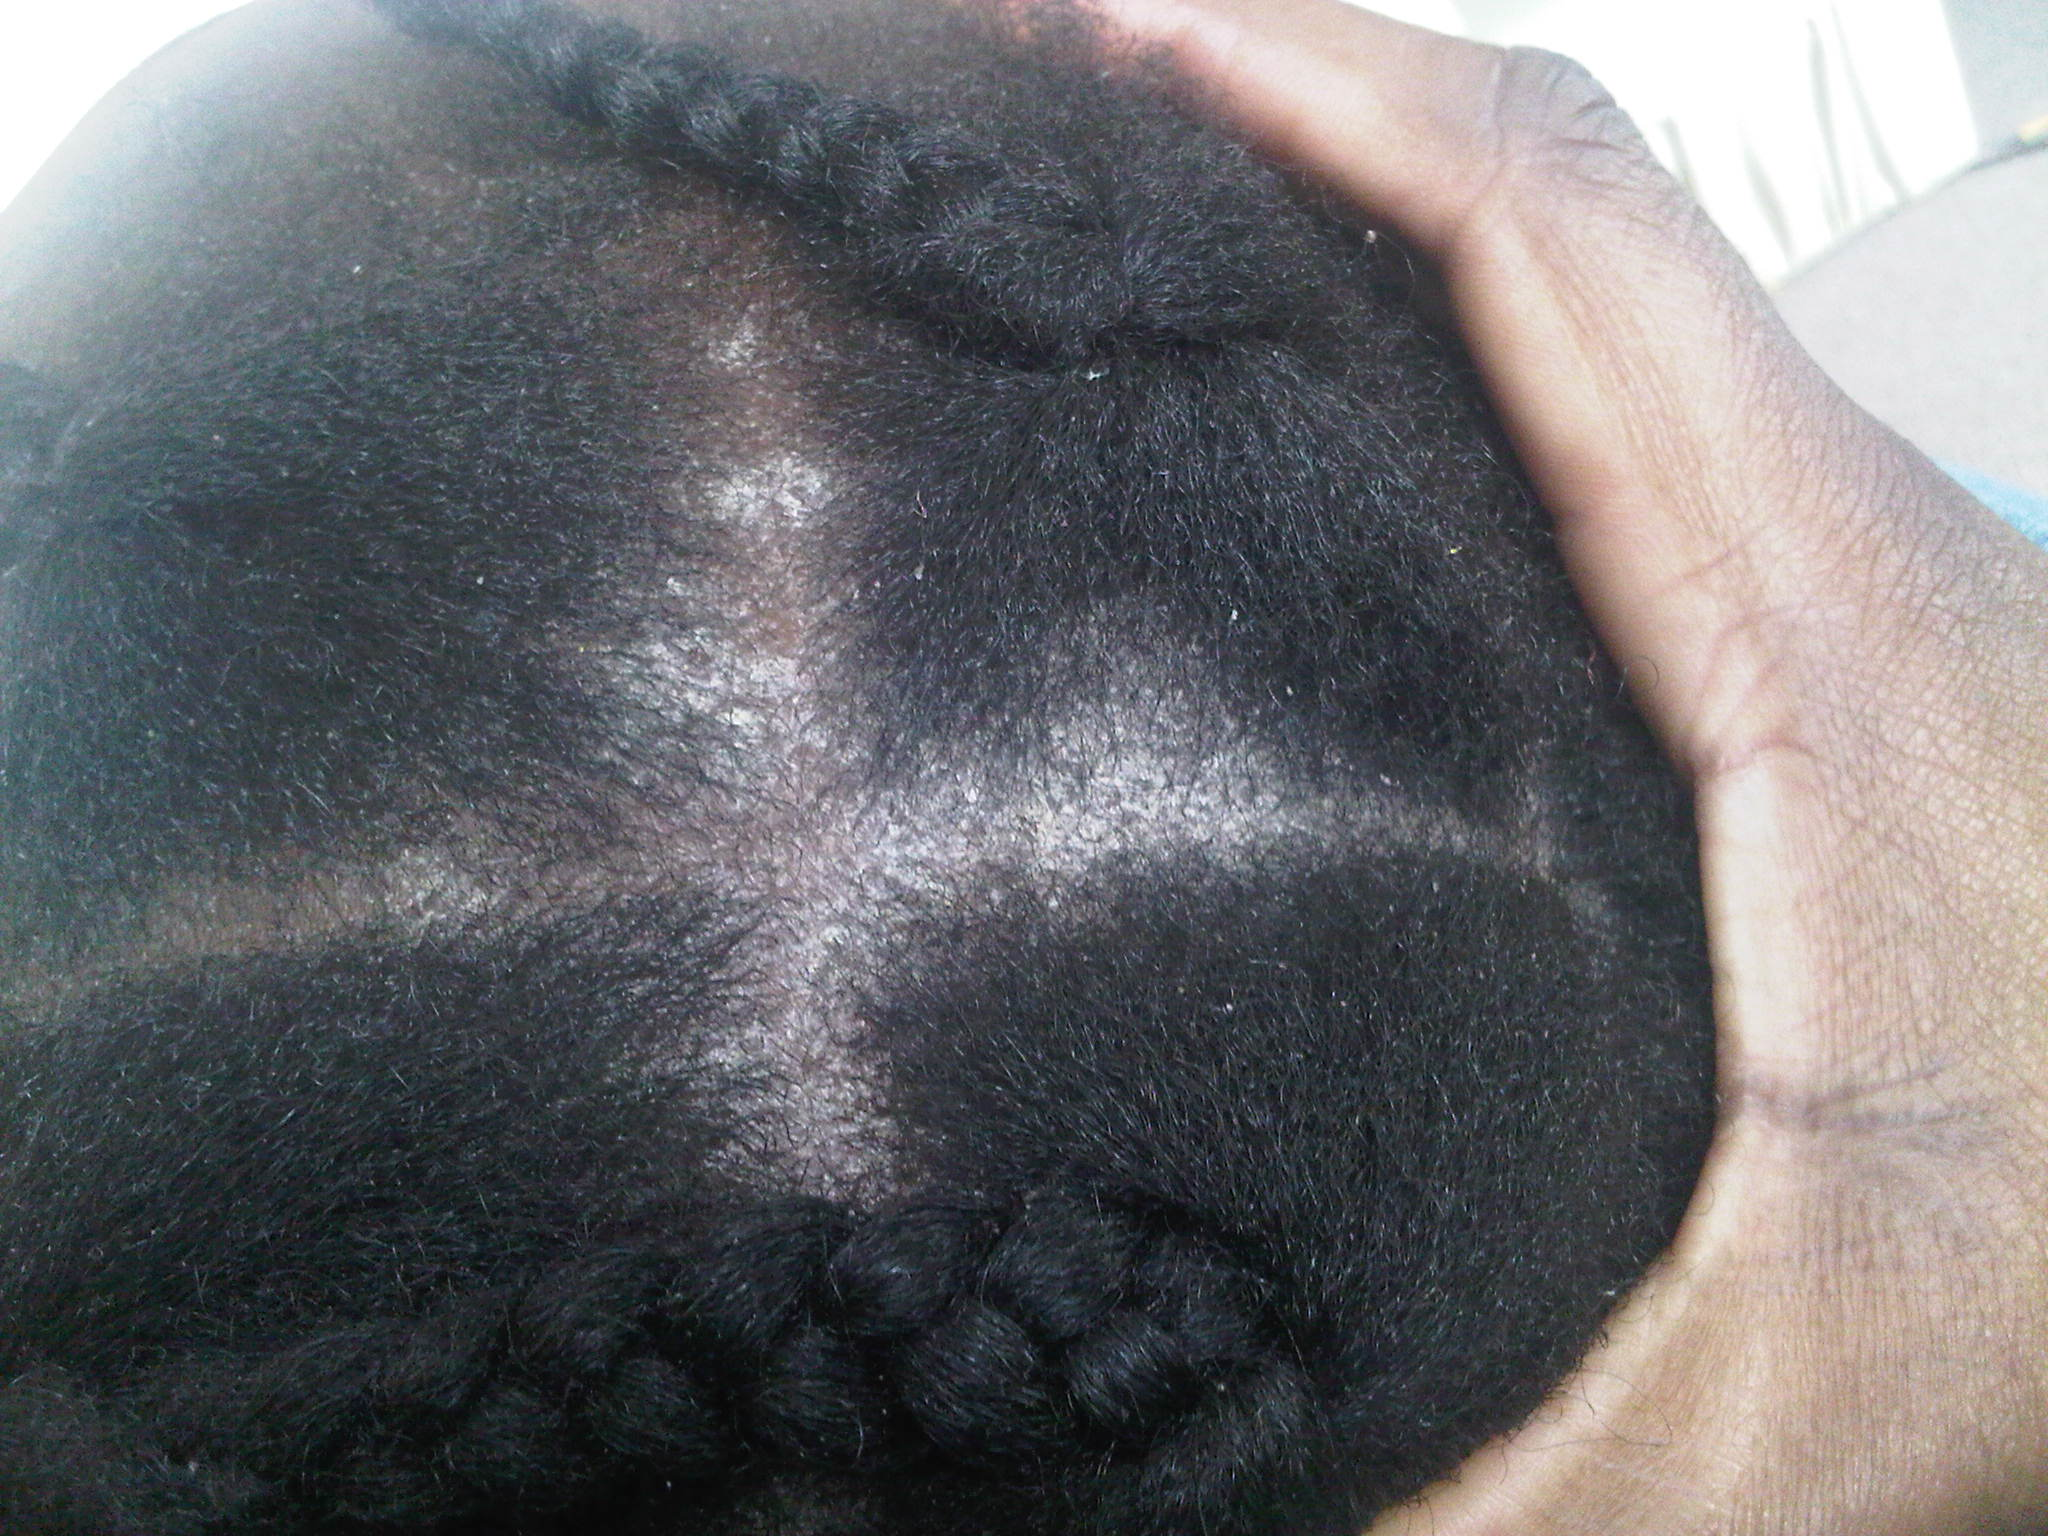 Scalp Fungus Pictures - Scalp Conditions Pictures | Types ...